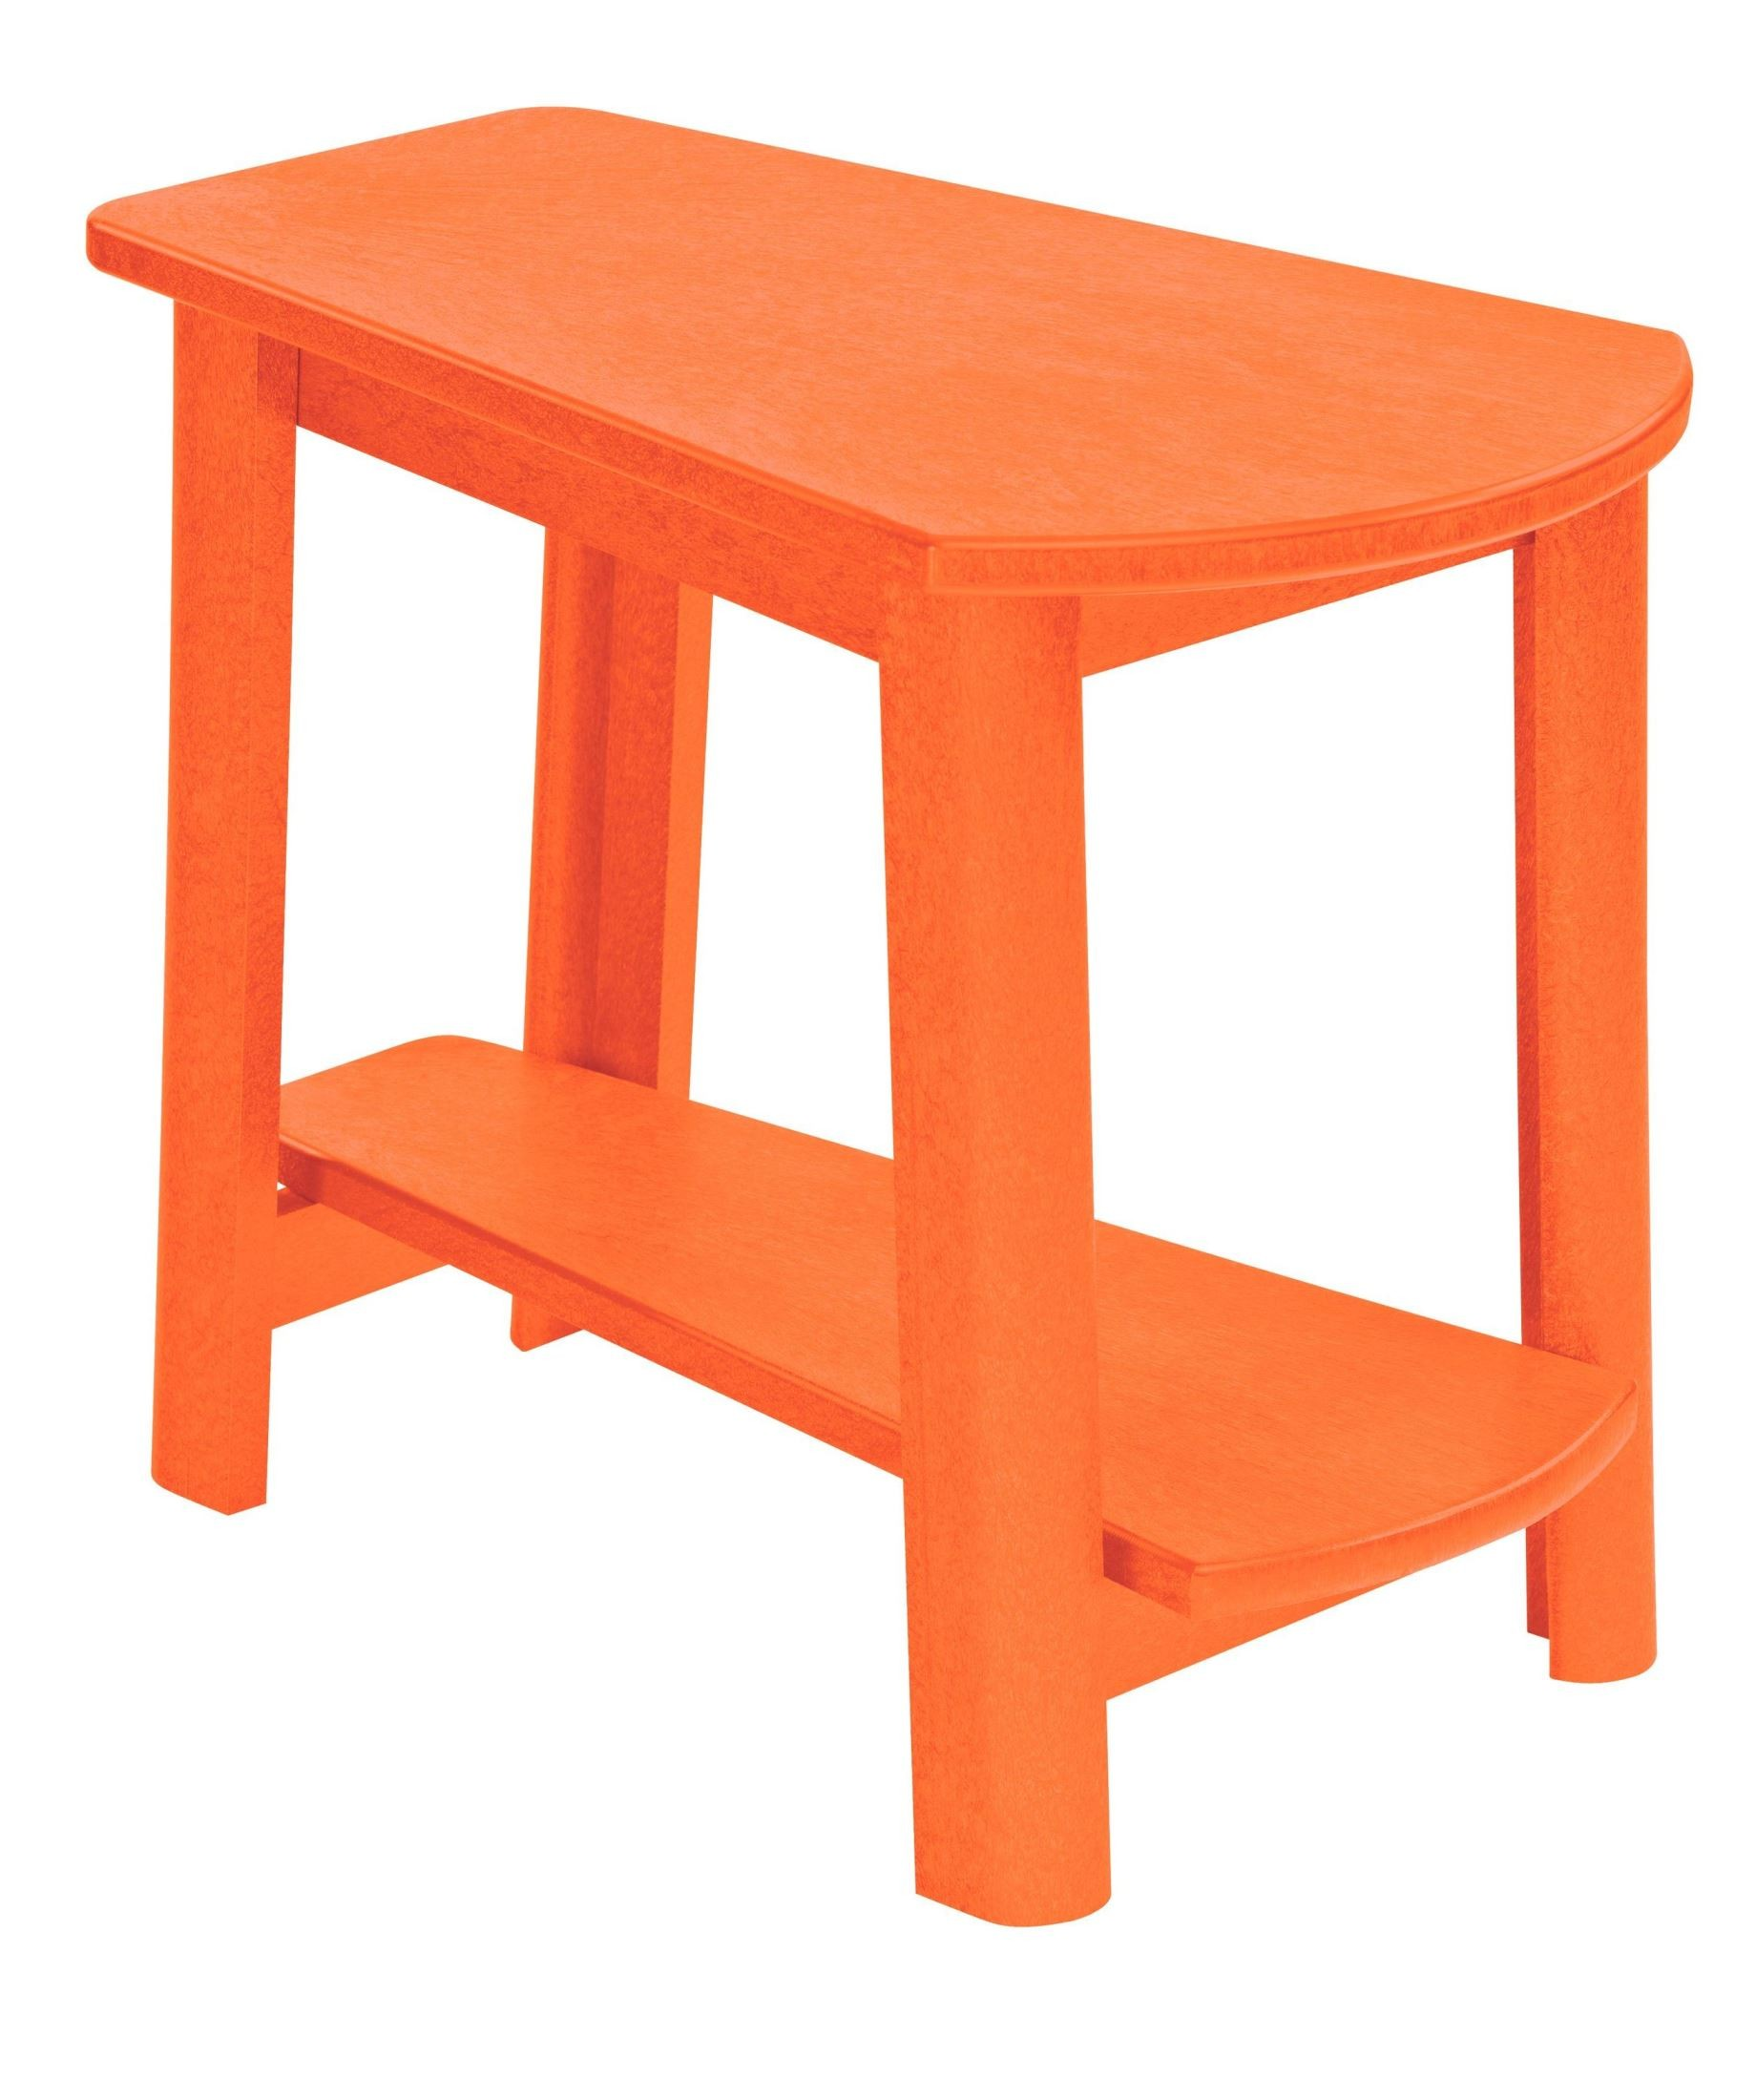 generations orange tapered accent table from plastic colorful small red drum set seat uttermost furniture end tables piece round coffee plexiglass cube hammered brass side ceramic